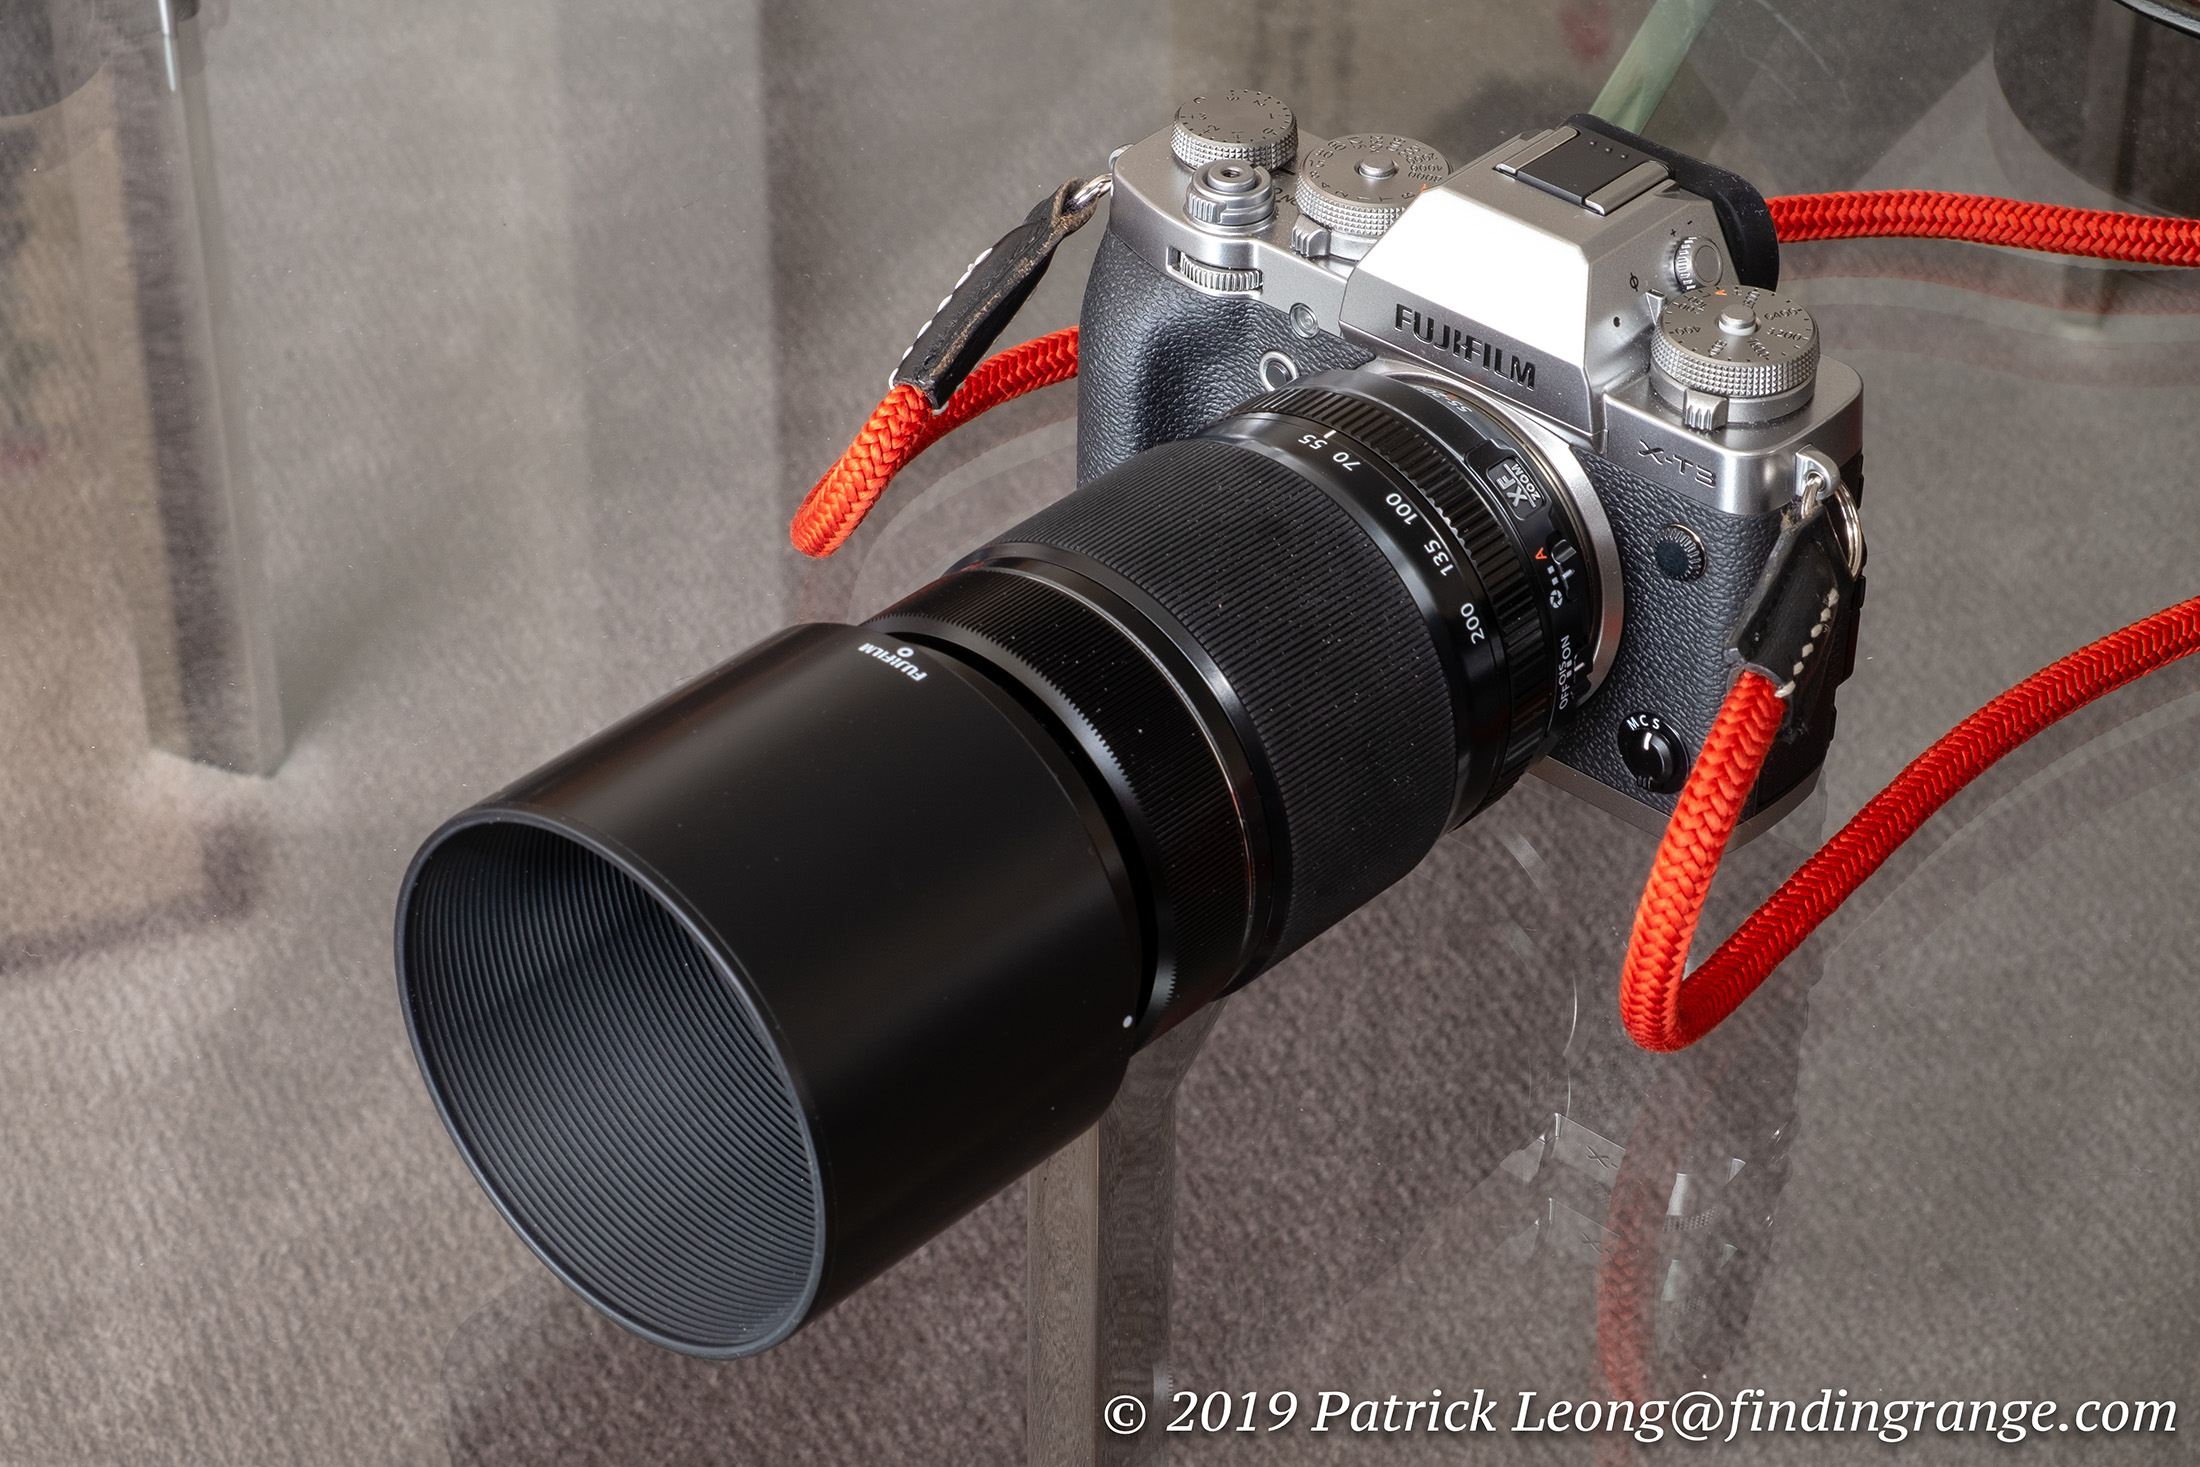 Fujifilm XF 55-200mm f3.5-4.8 R LM OIS Lens Review